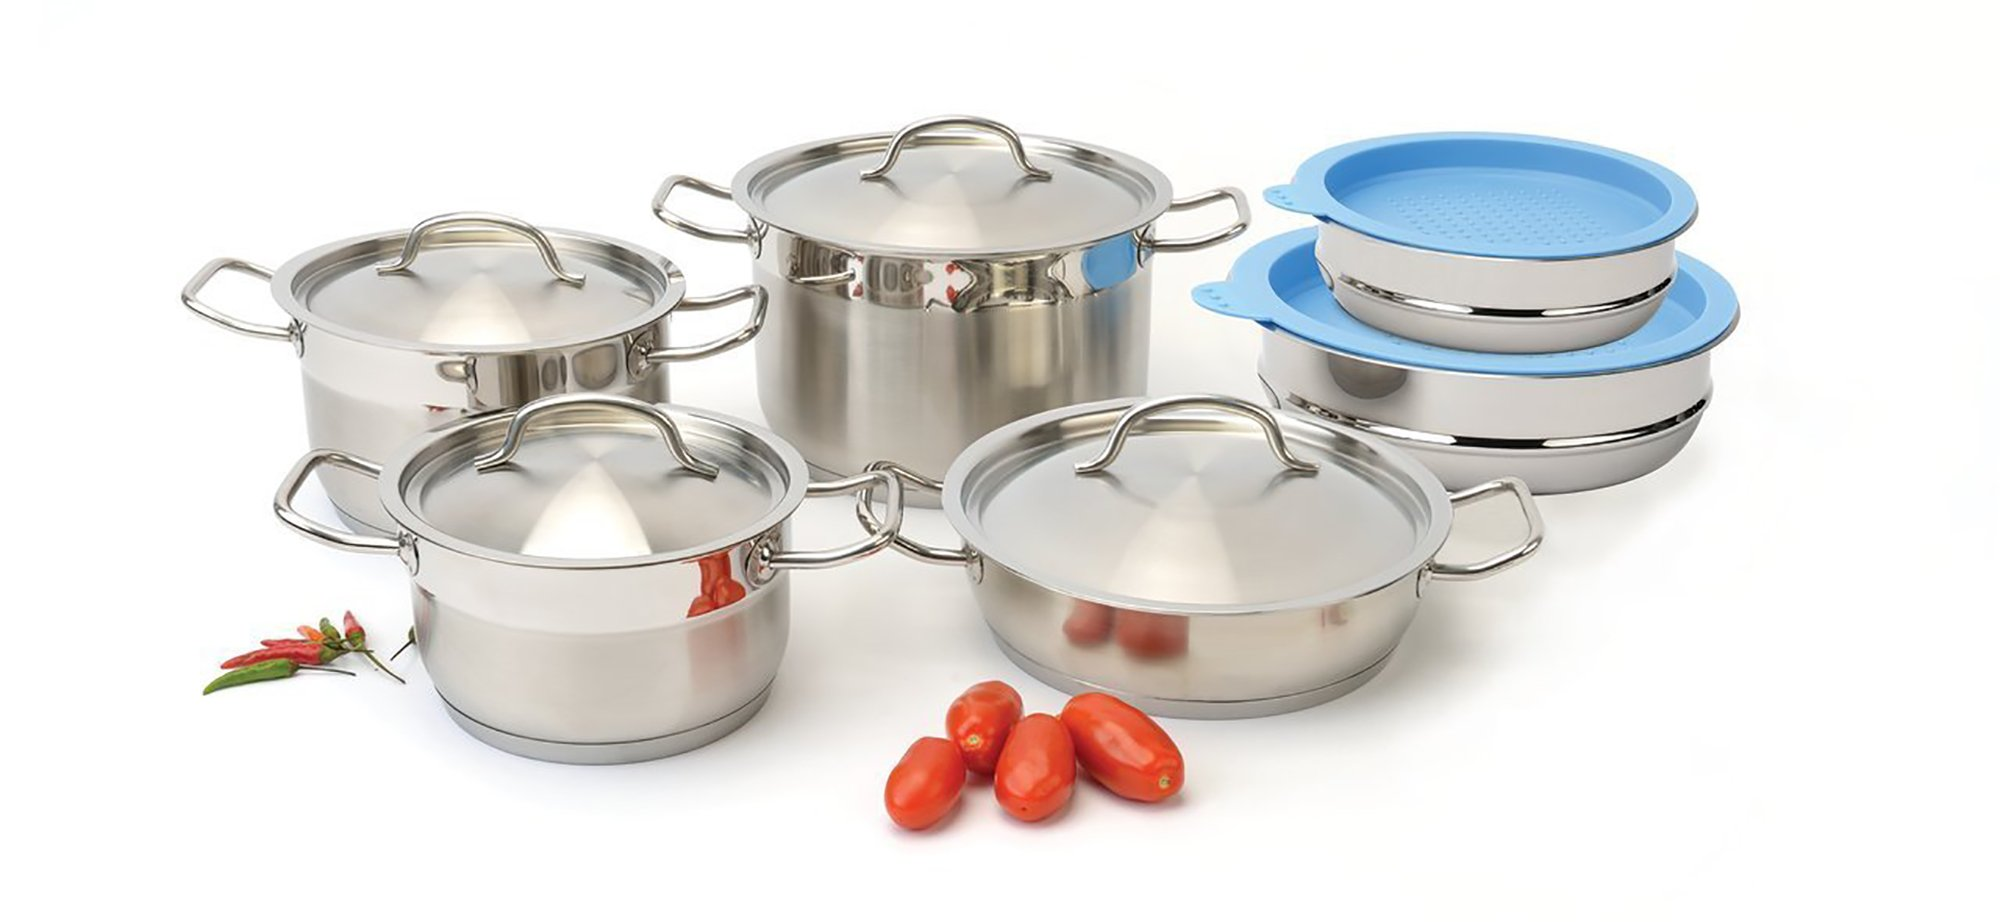 BergHOFF Hotel Line 12-Piece Cookware Set with Mixing Bowls